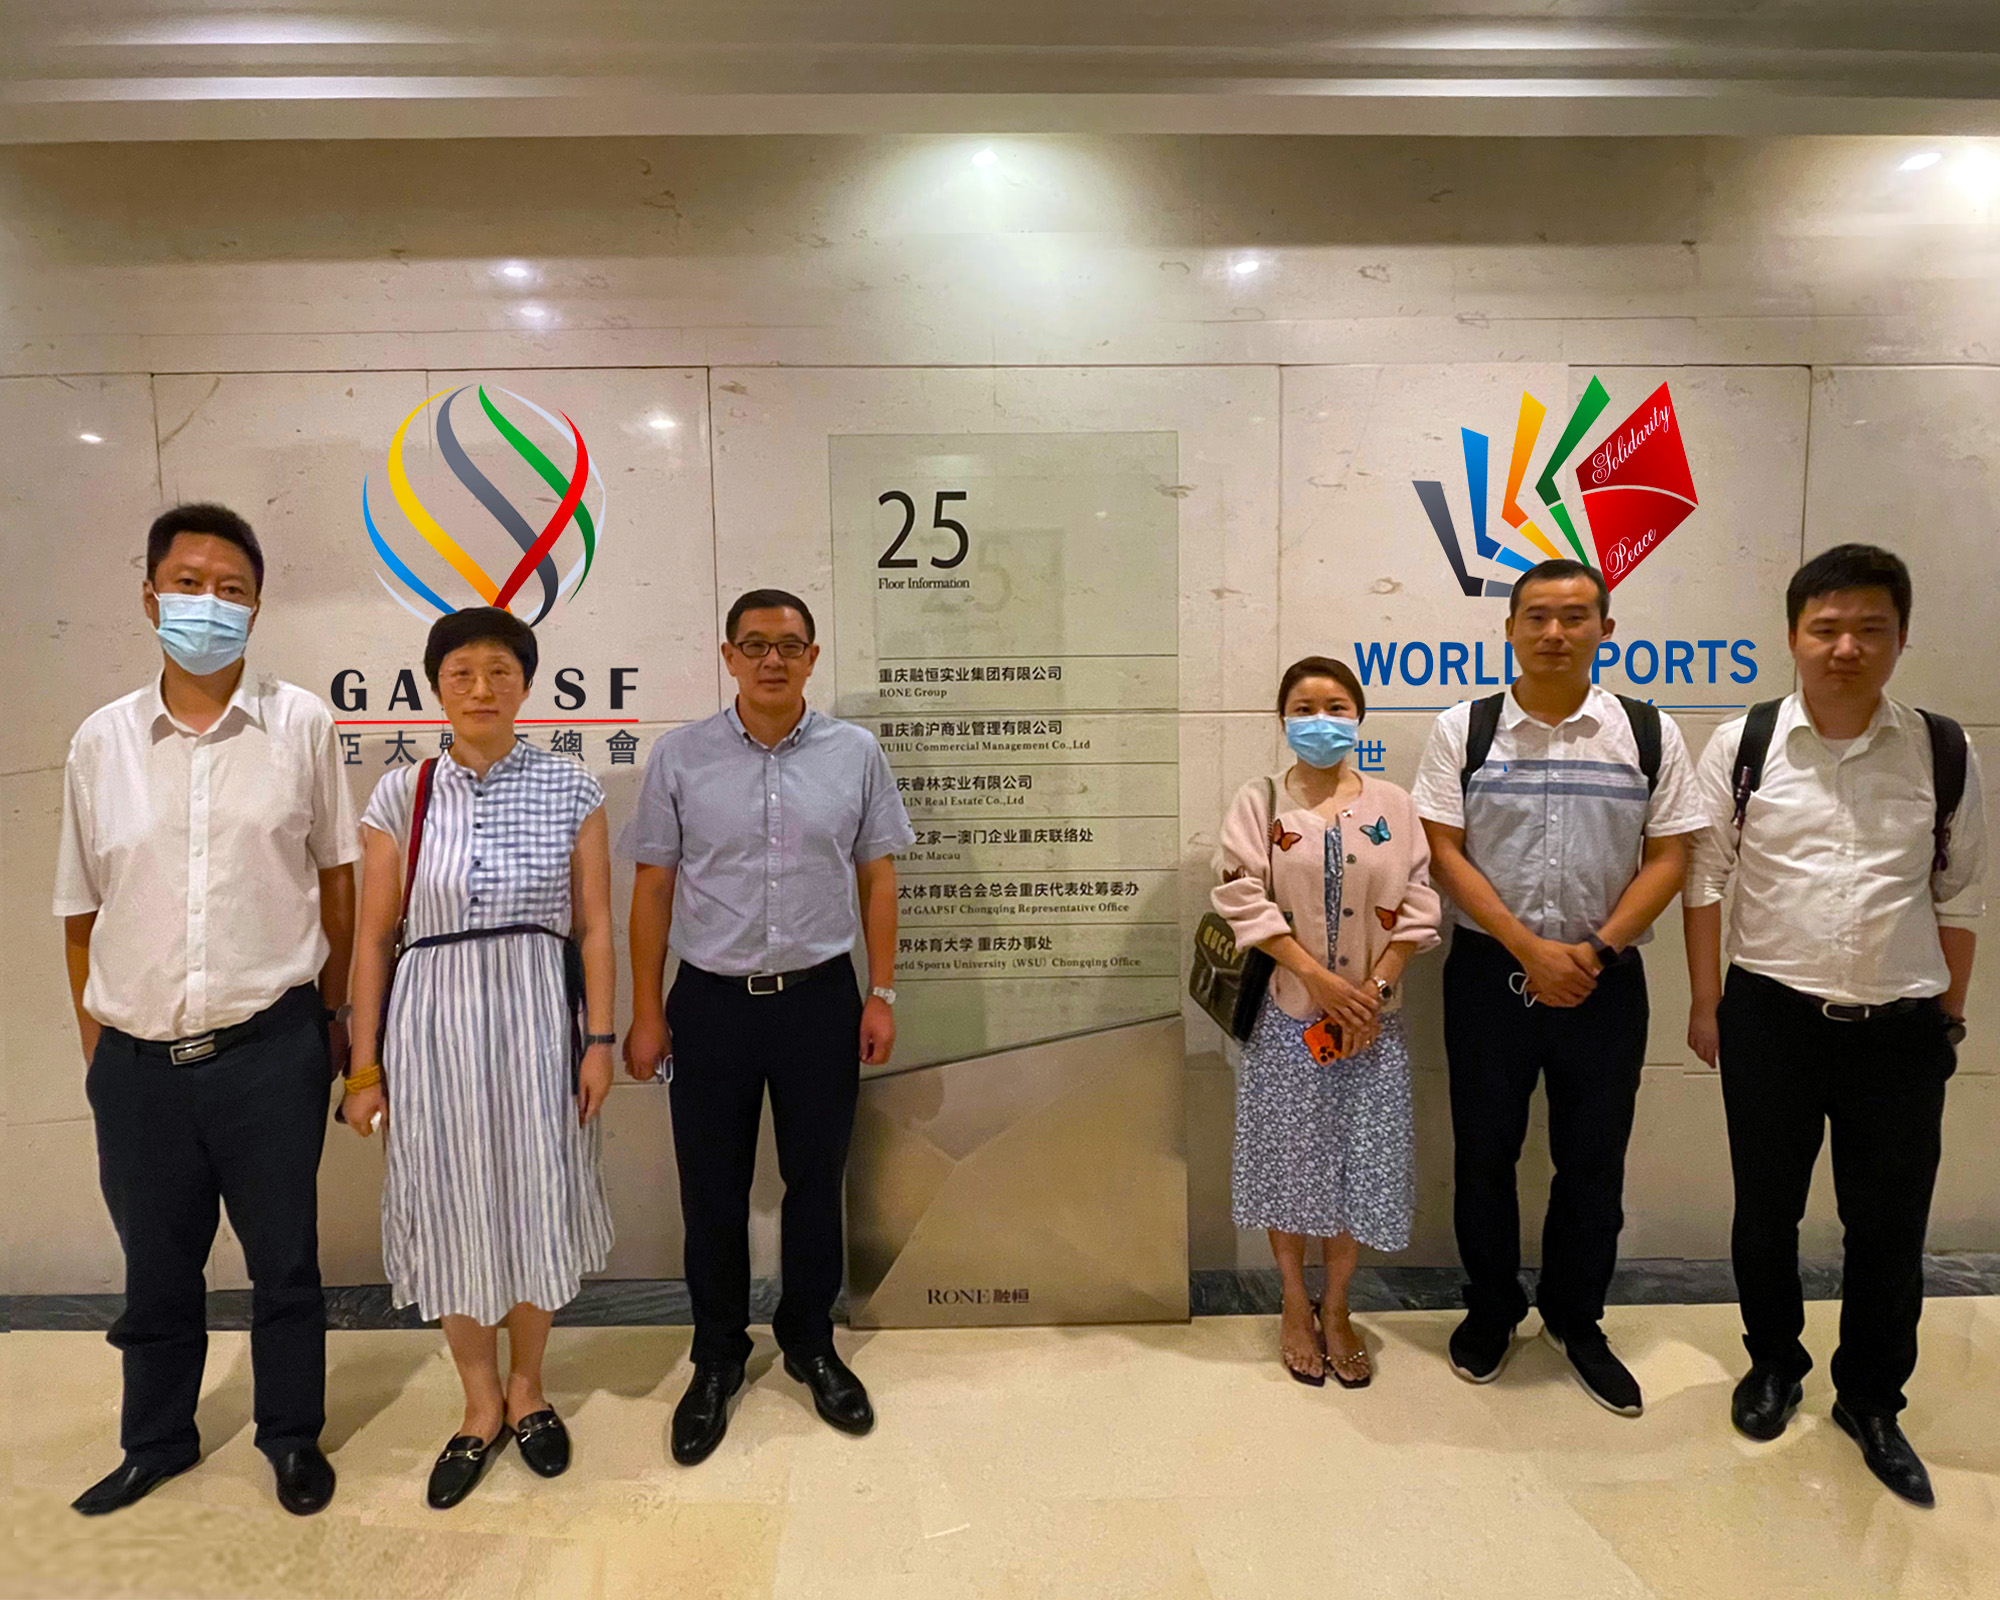 Officers and leaders of enterprises of Wuhou District of Chengdu visited GAAPSF and WSU Office in Chongqing